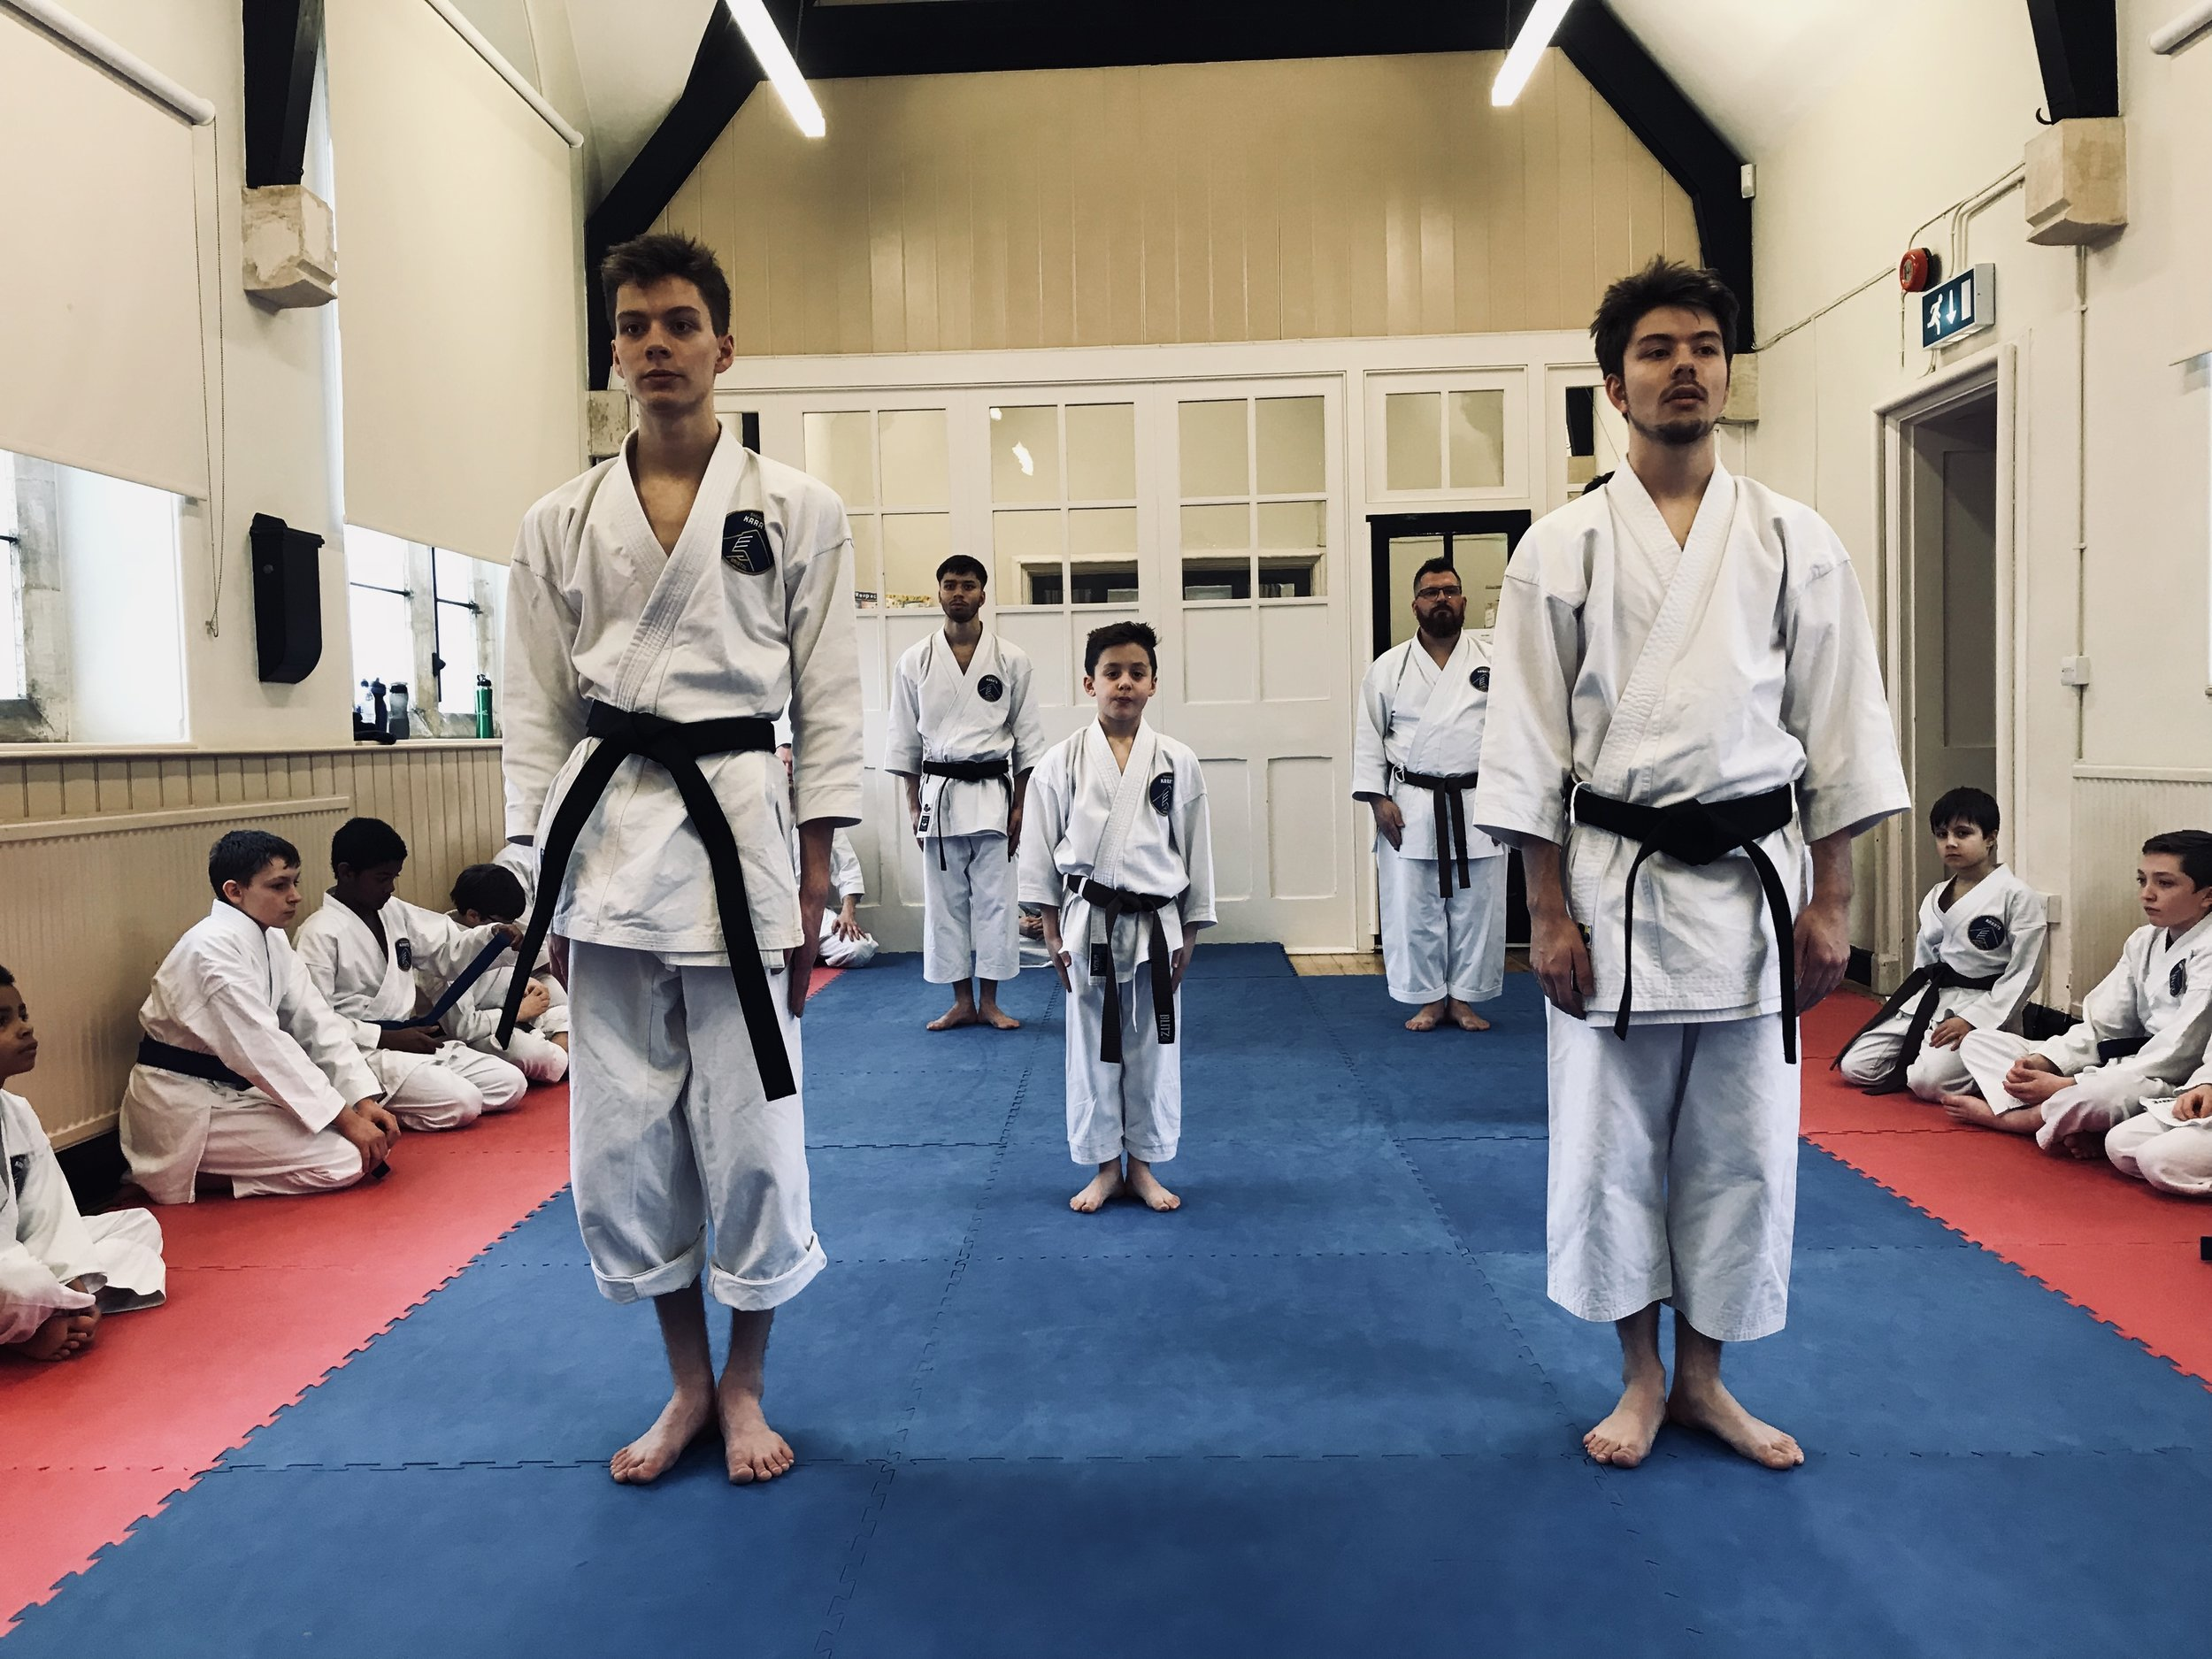 We have many instructors from many different backgrounds including boxing and kung fu. Senseis Laurence Daniel and Isaac Daniel lead the kata practice at our Manor Hall dojo in Coalpit Heath, Bristol.